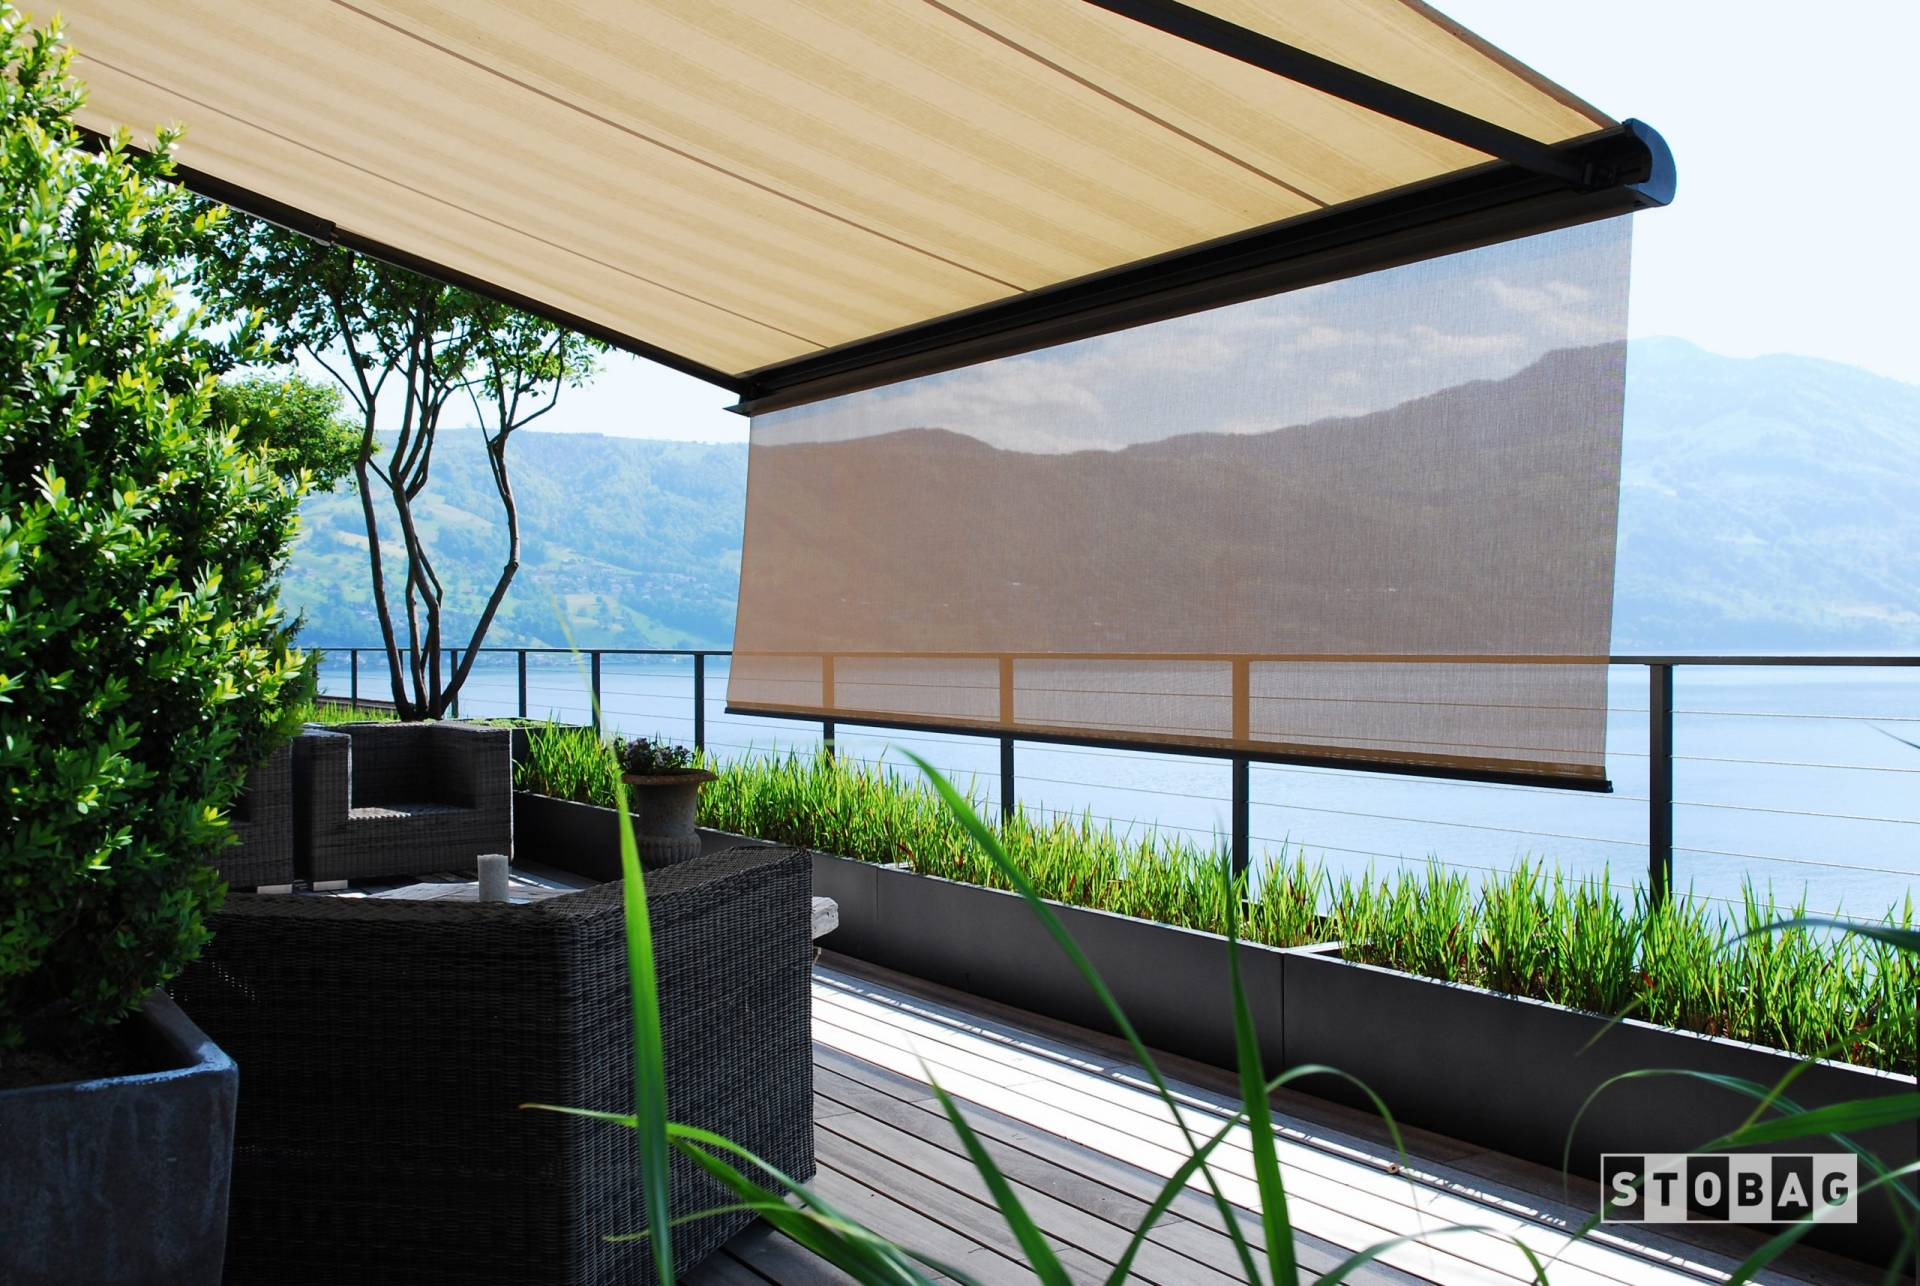 Custom motorized retractable awning with drop down shade